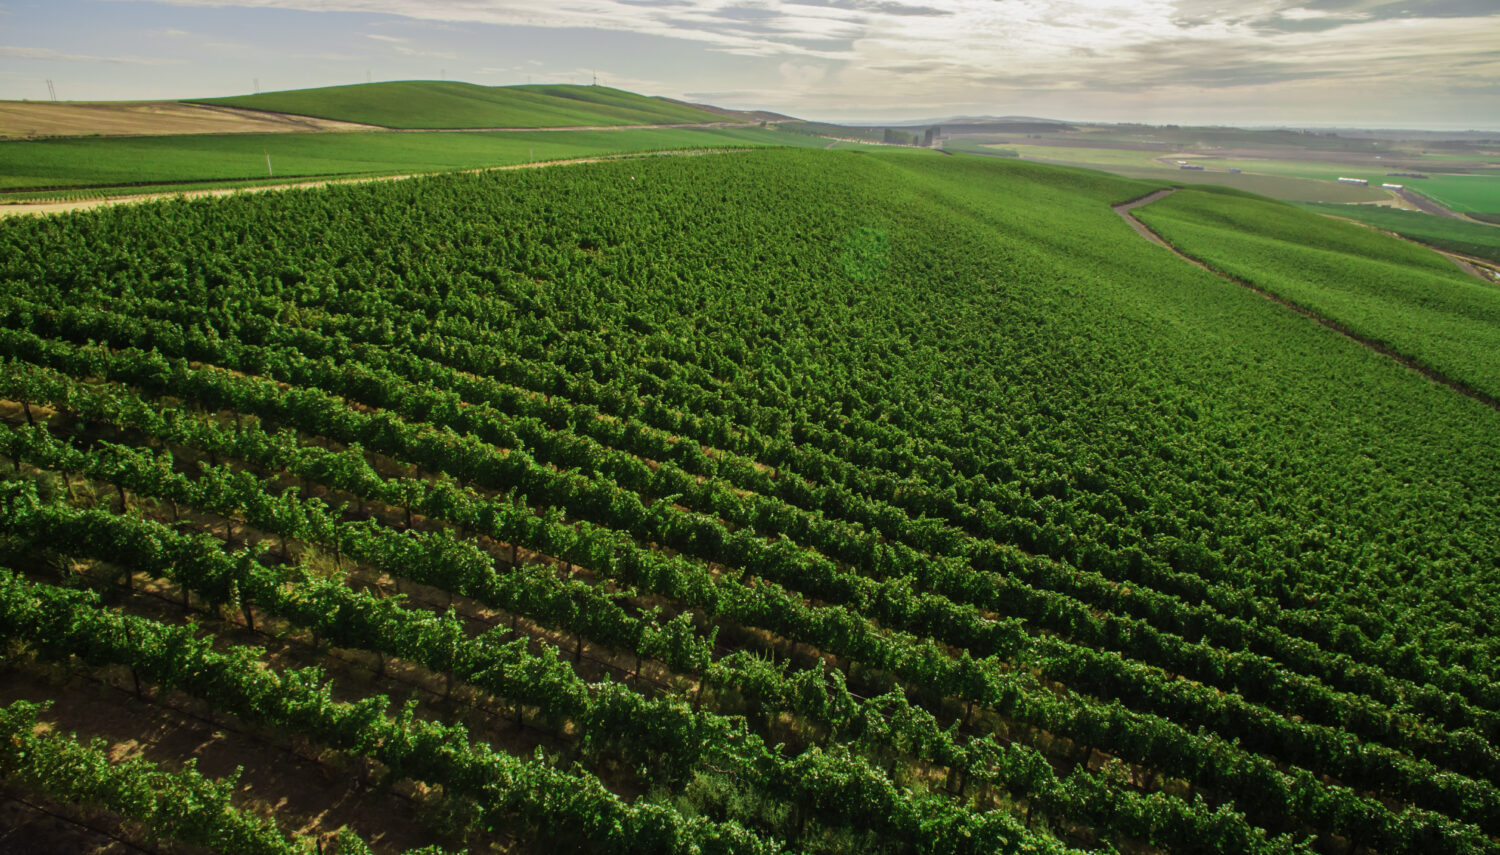 Aerial view of bright green vines in rows stretching toward the horizon under a blue sky with bright white clouds.